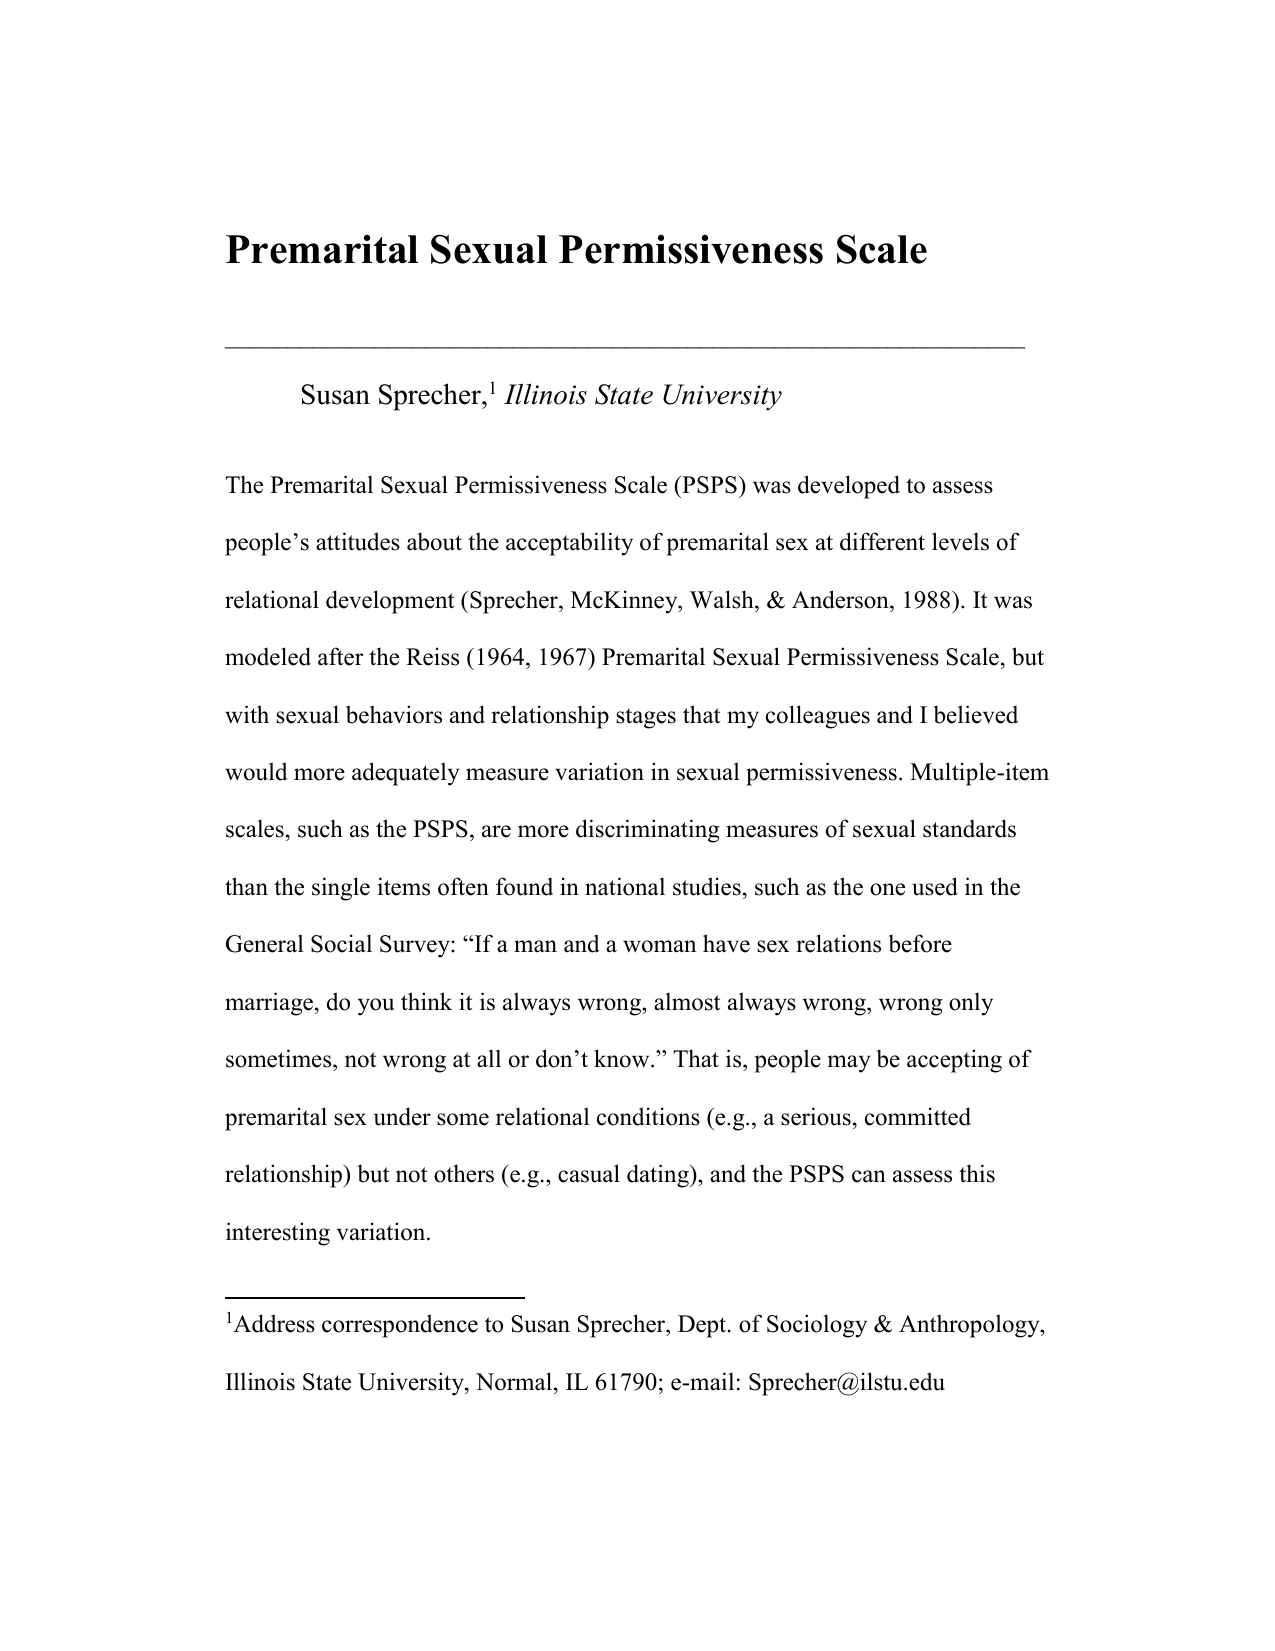 Premarital sex attitudes and behavior by dating stage